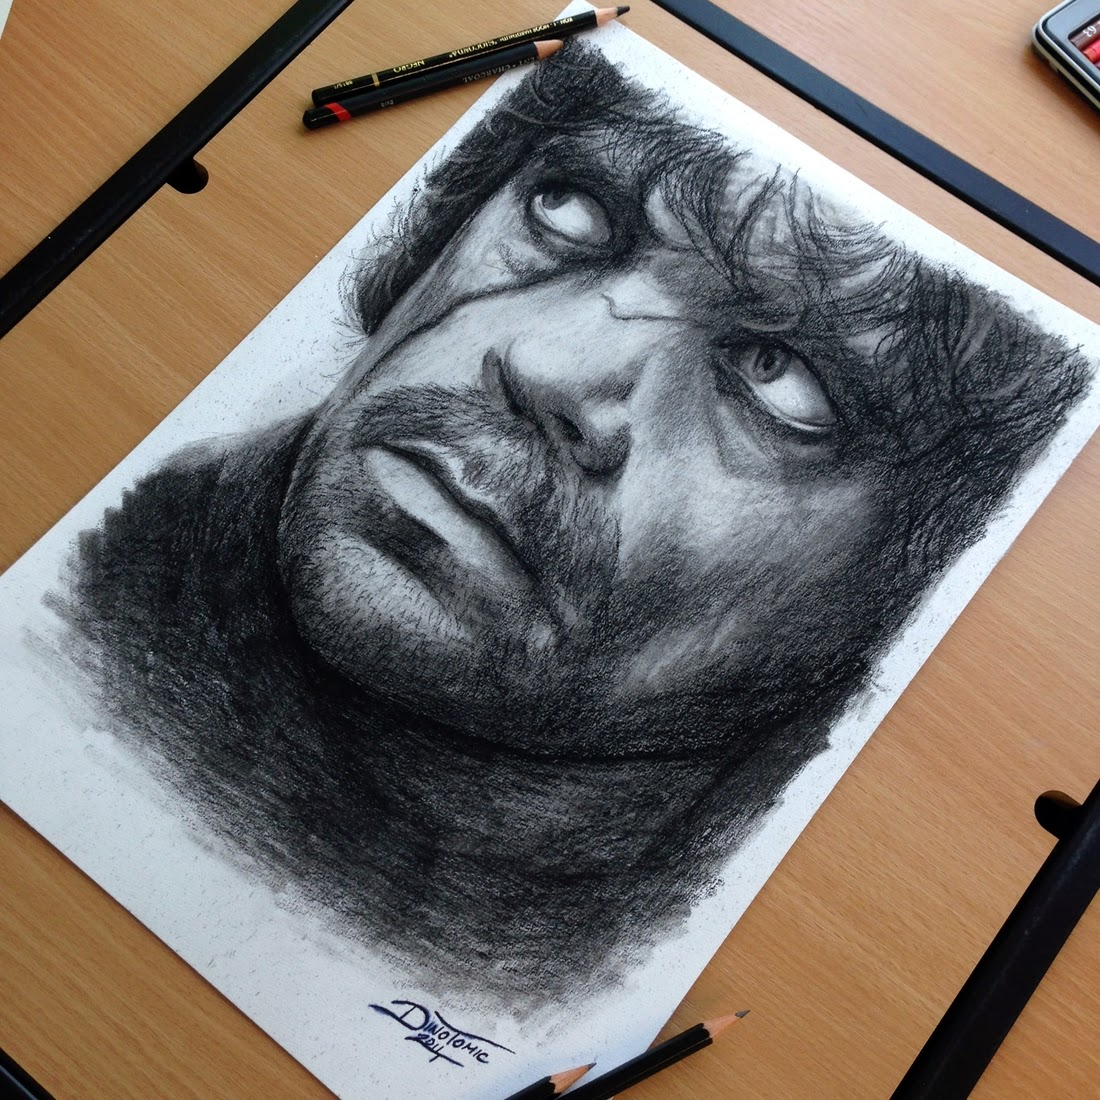 16-Tyrion-Lannister-Peter-Dinklage-Dino-Tomic-AtomiccircuS-Mastering-Art-in-Eclectic-Drawings-www-designstack-co